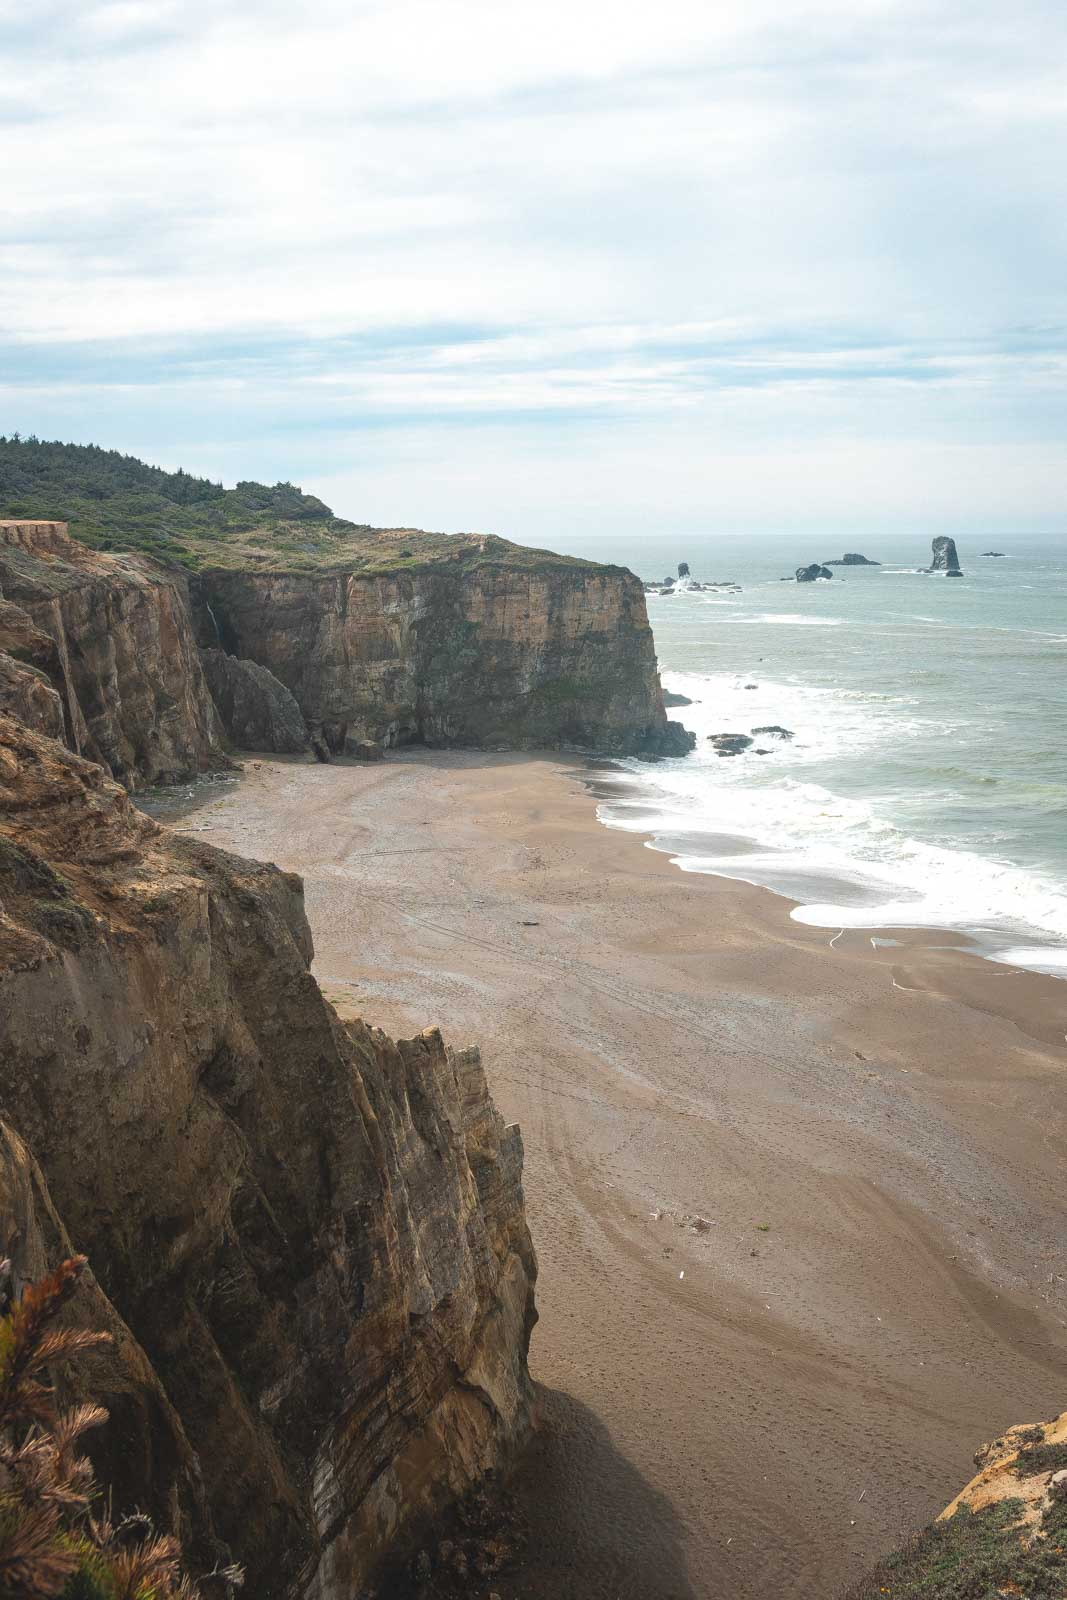 View over beach and seacliffs at Floras Lake State Park, one of the best beaches on the Oregon Coast